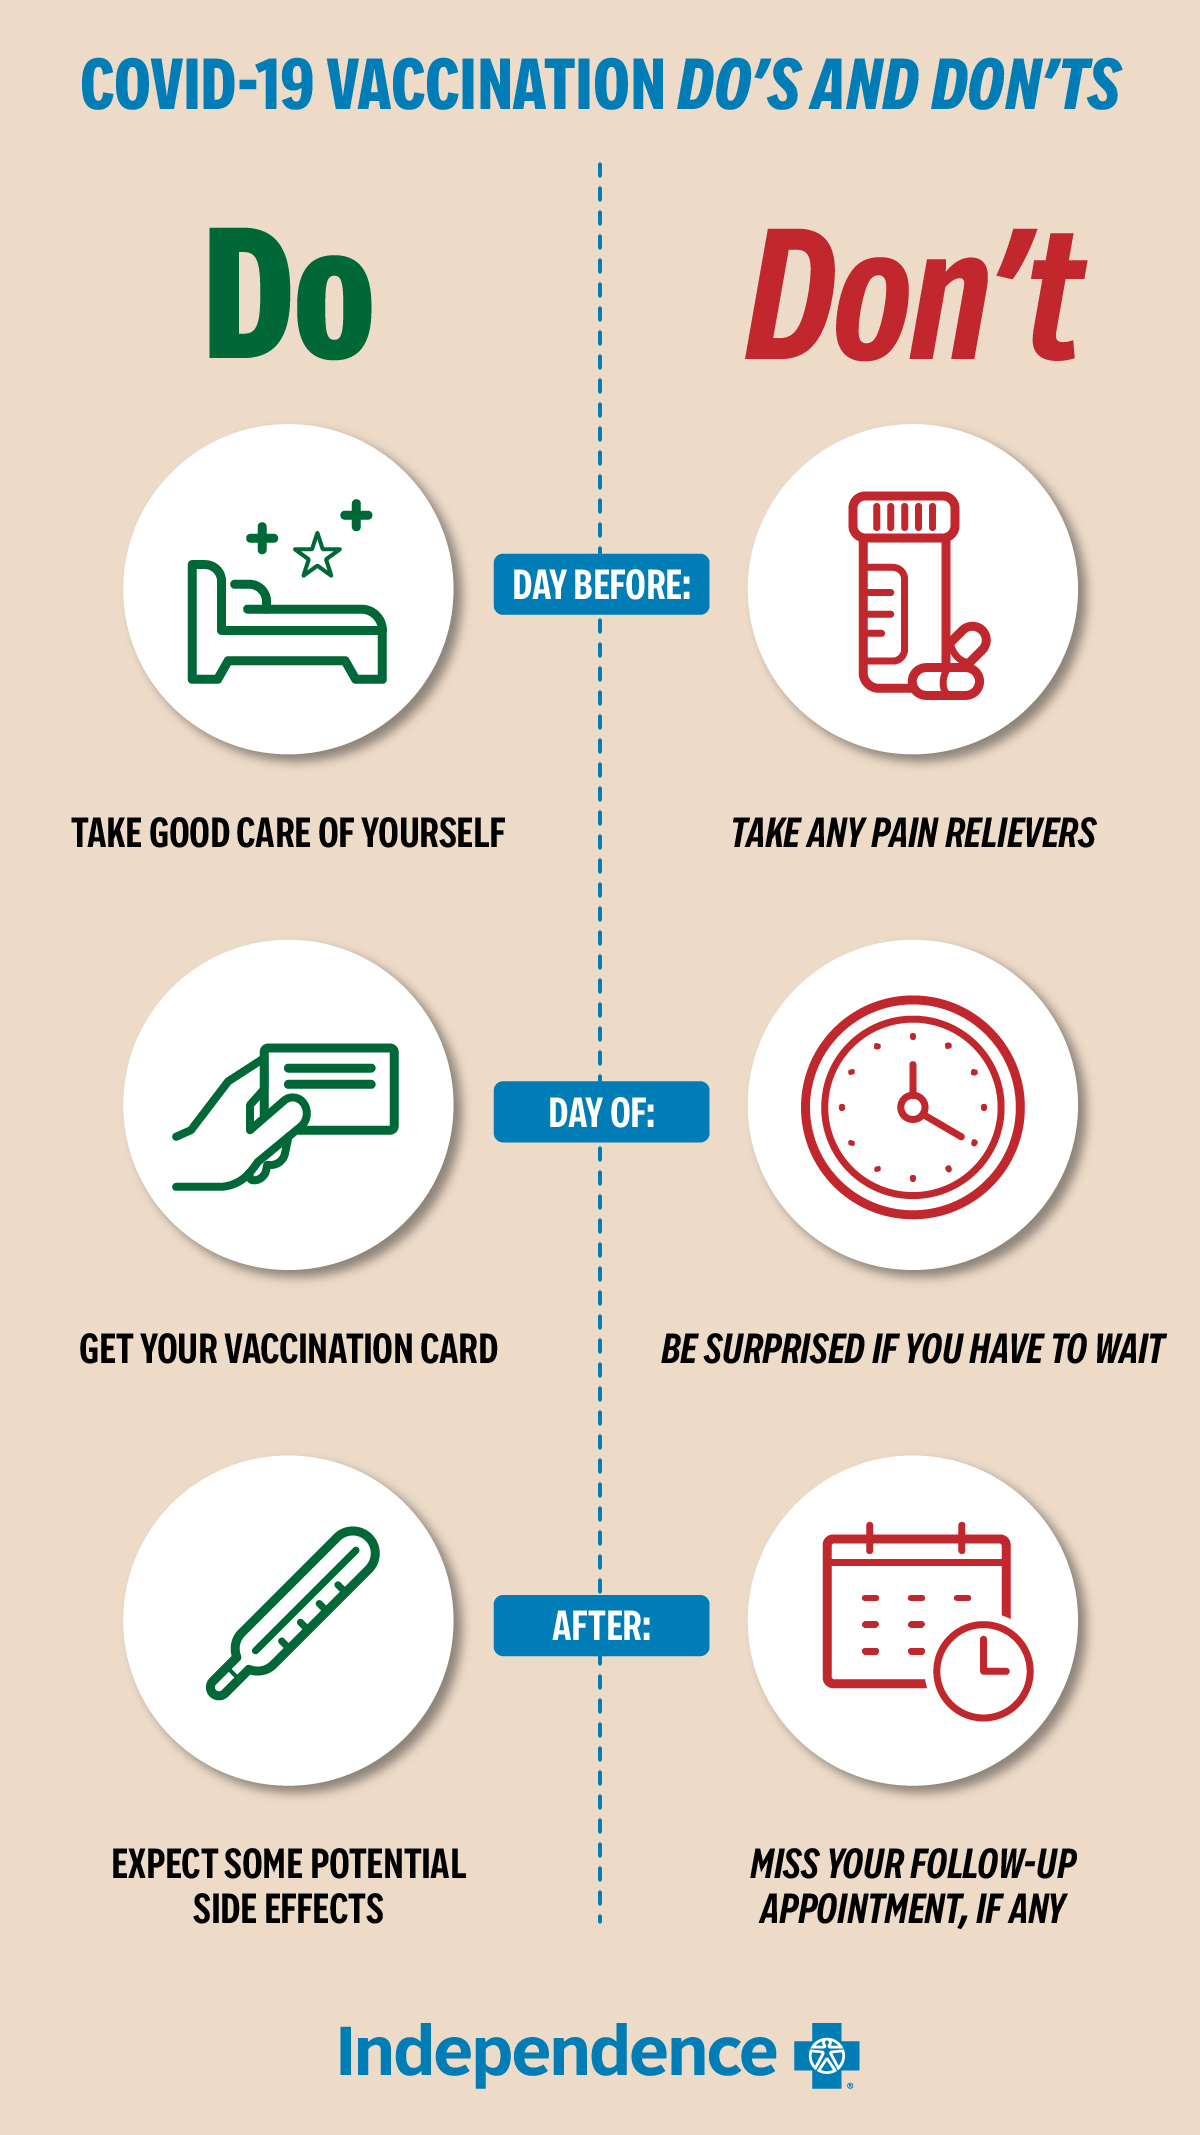 Infographic: List of COVID vaccination do's and don'ts